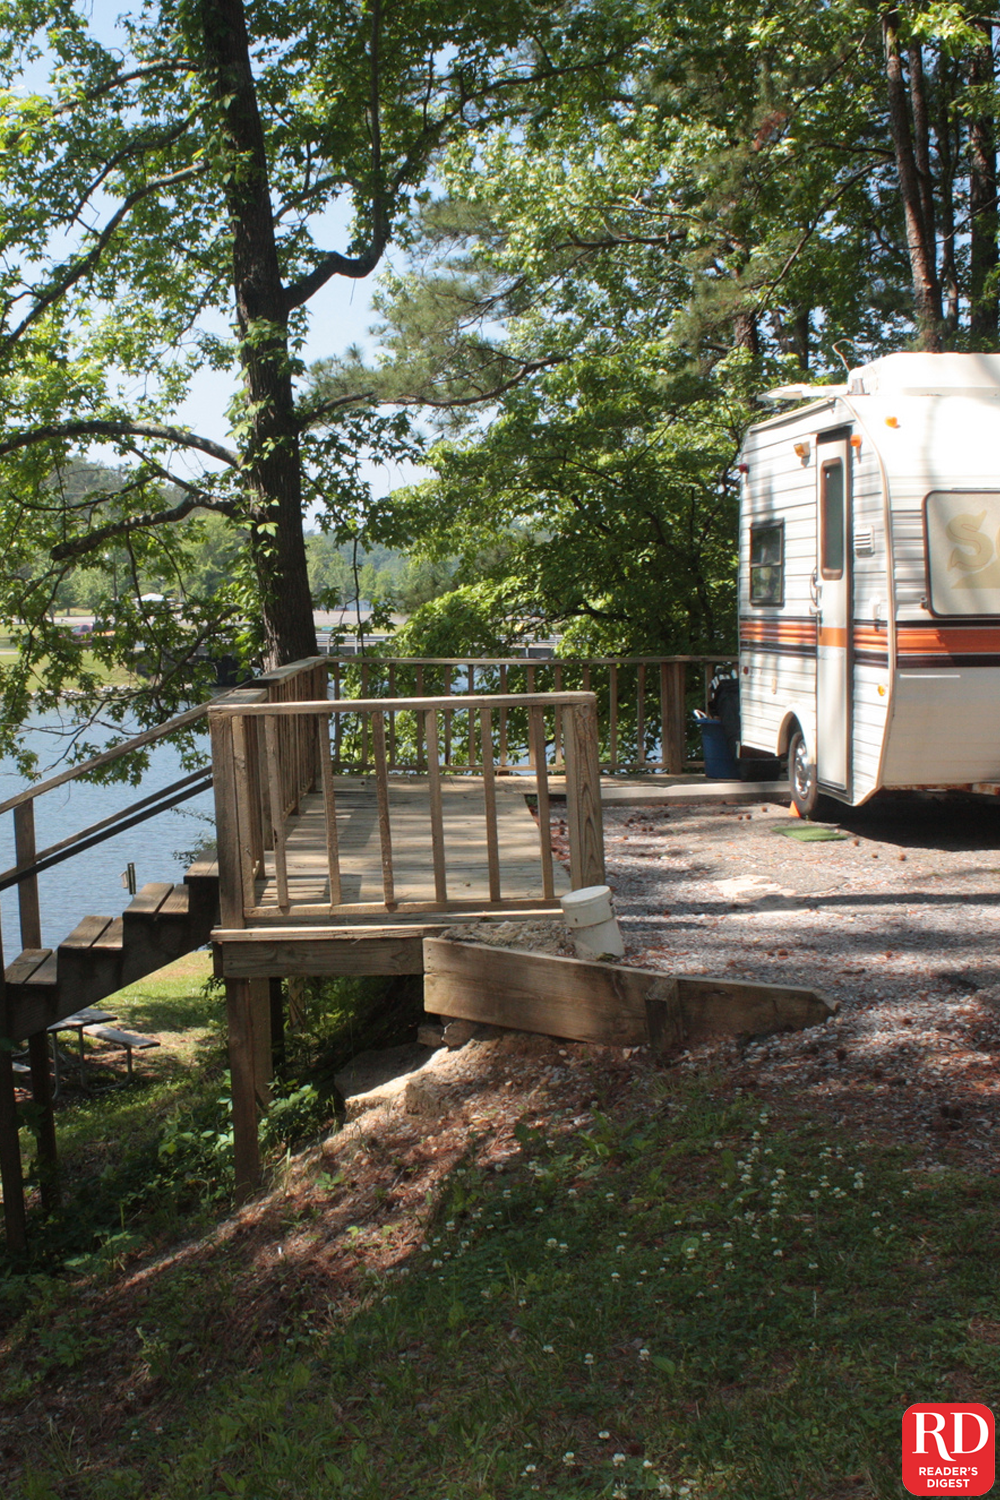 The Best RV Parks in Every State — Park yourself and your vehicle at these best RV parks in every